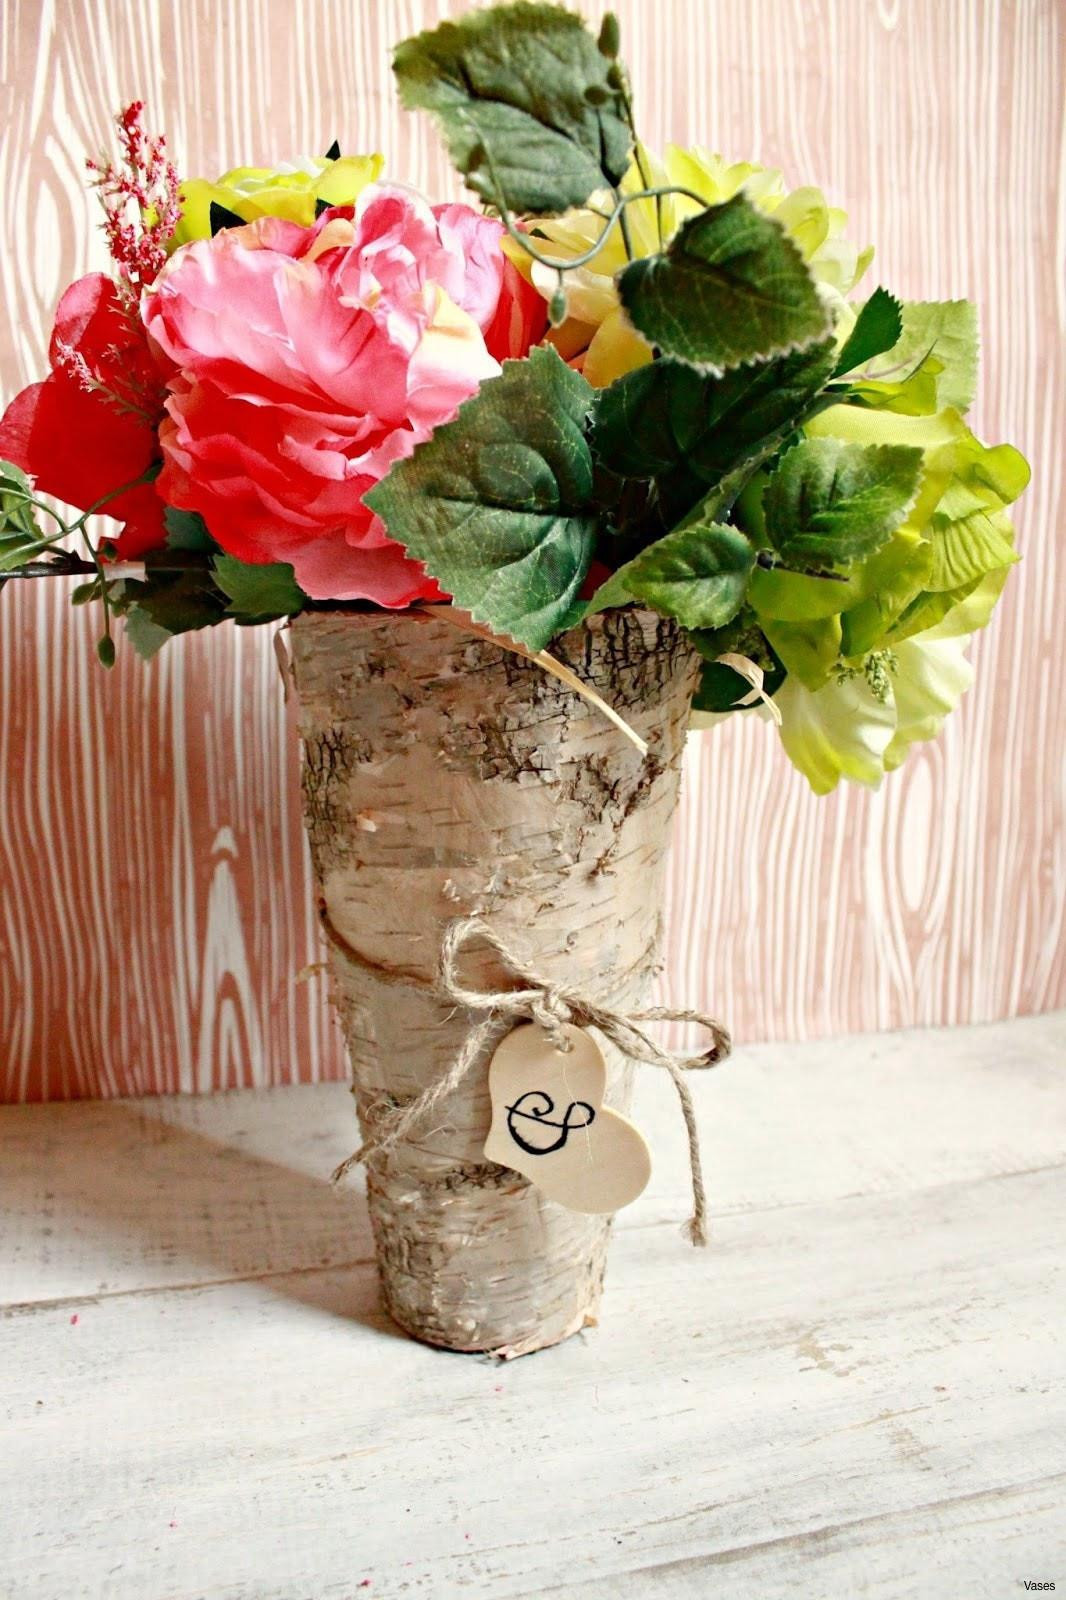 vases for wedding centerpieces wholesale of cheap wedding decorations diy new wedding flowers h vases diy wood throughout cheap wedding decorations diy new wedding flowers h vases diy wood vase i 0d base design